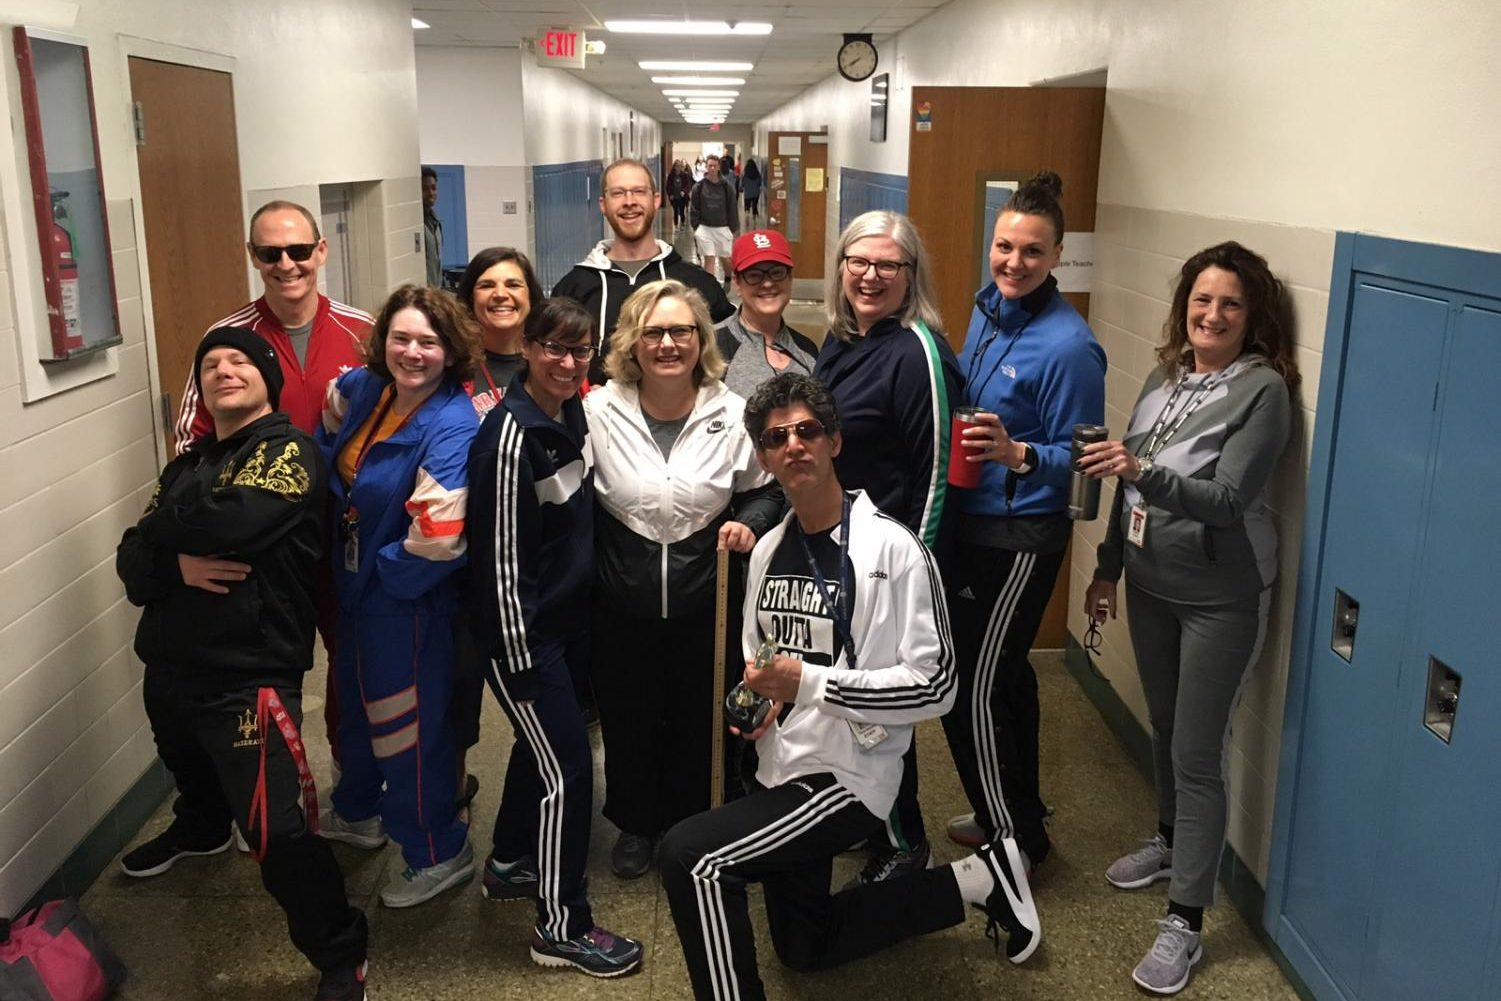 The English Department poses in their tracksuit gear before the school day starts.